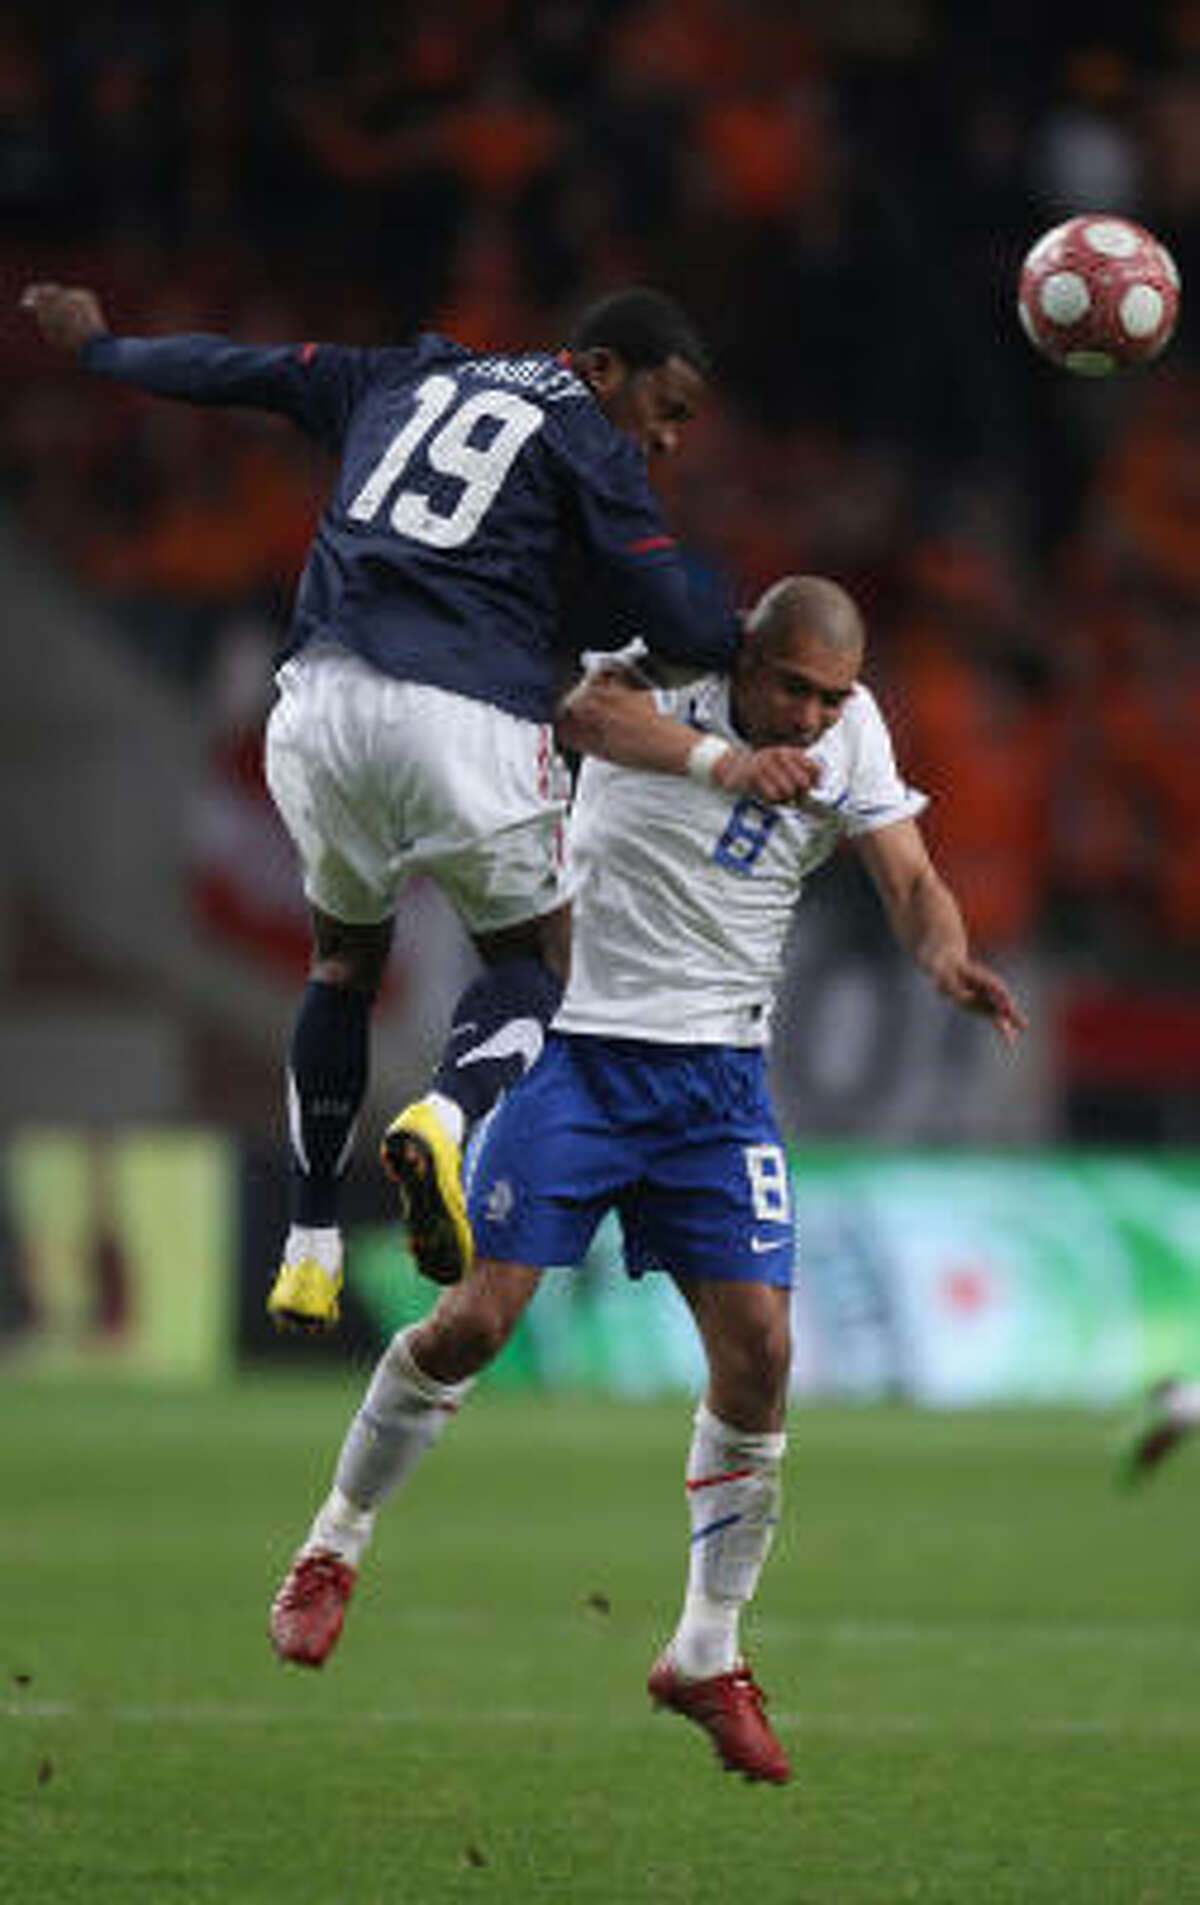 Robert Findley of USA and Nigel de Jong of the Netherlands attack the ball during their matchup.